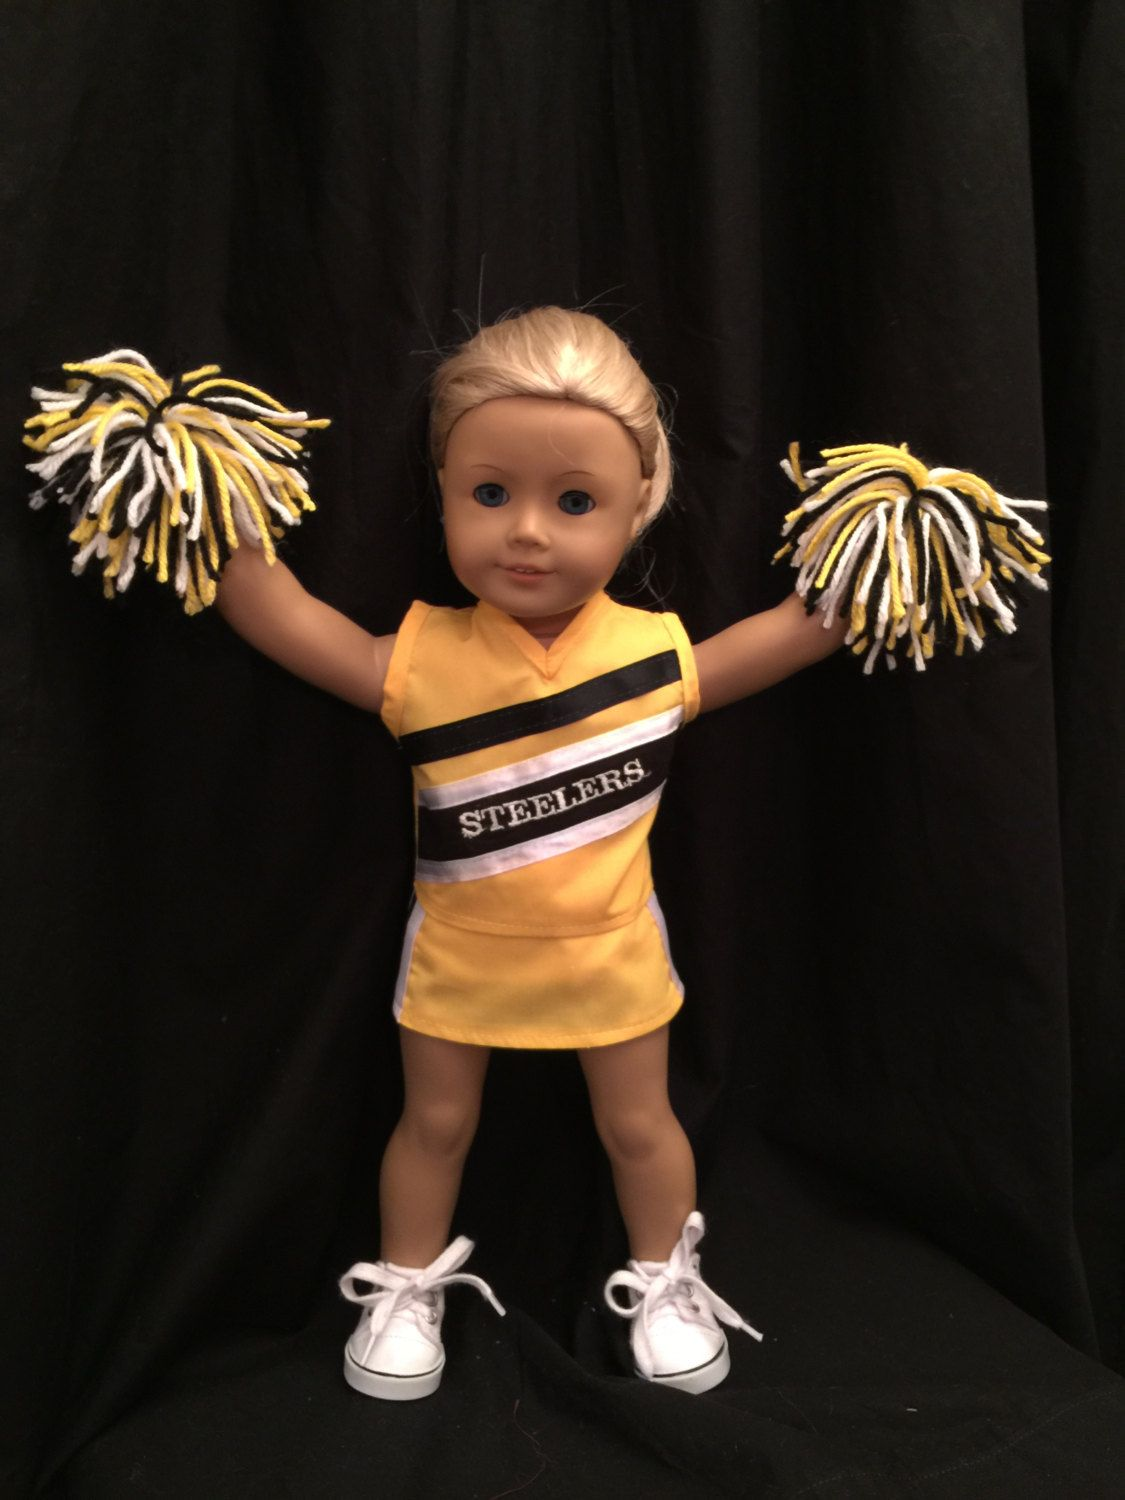 Homemade 18 Inch Soft Body Steelers Cheerleading Uniform For Dolls Like American Girl Made From Jelly Bean Soup Pattern s